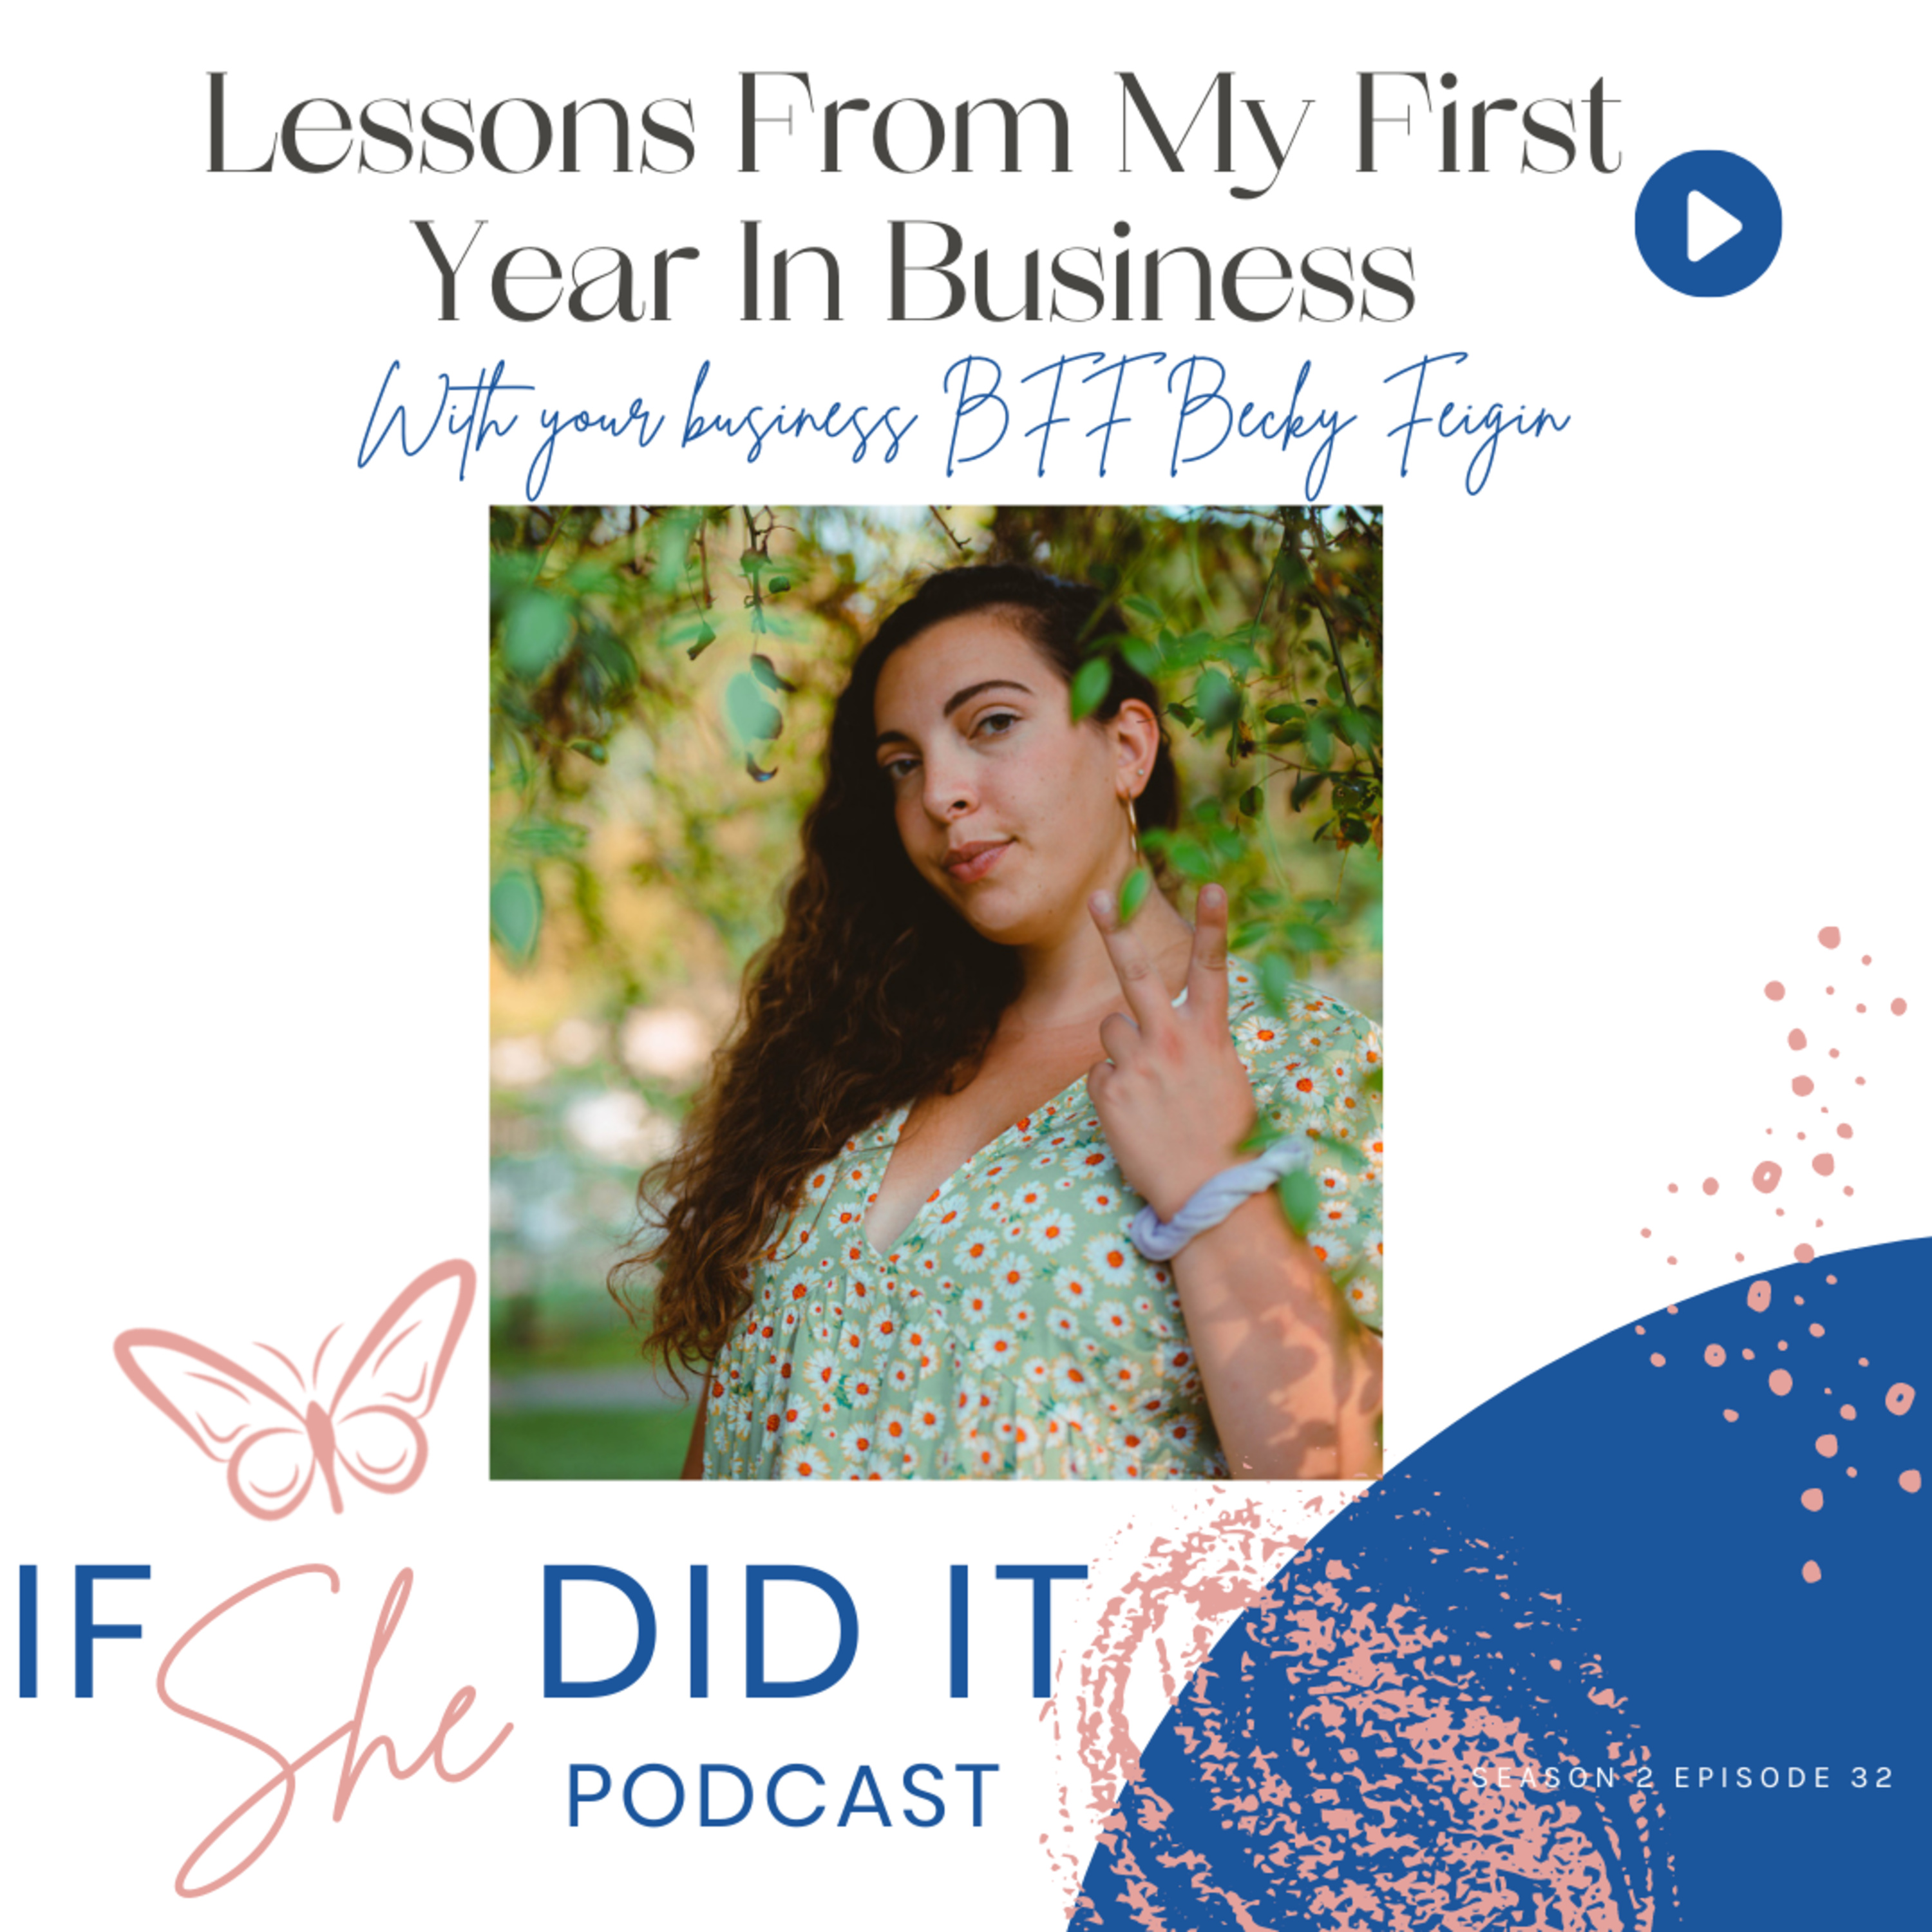 Lessons From My First Year in Business